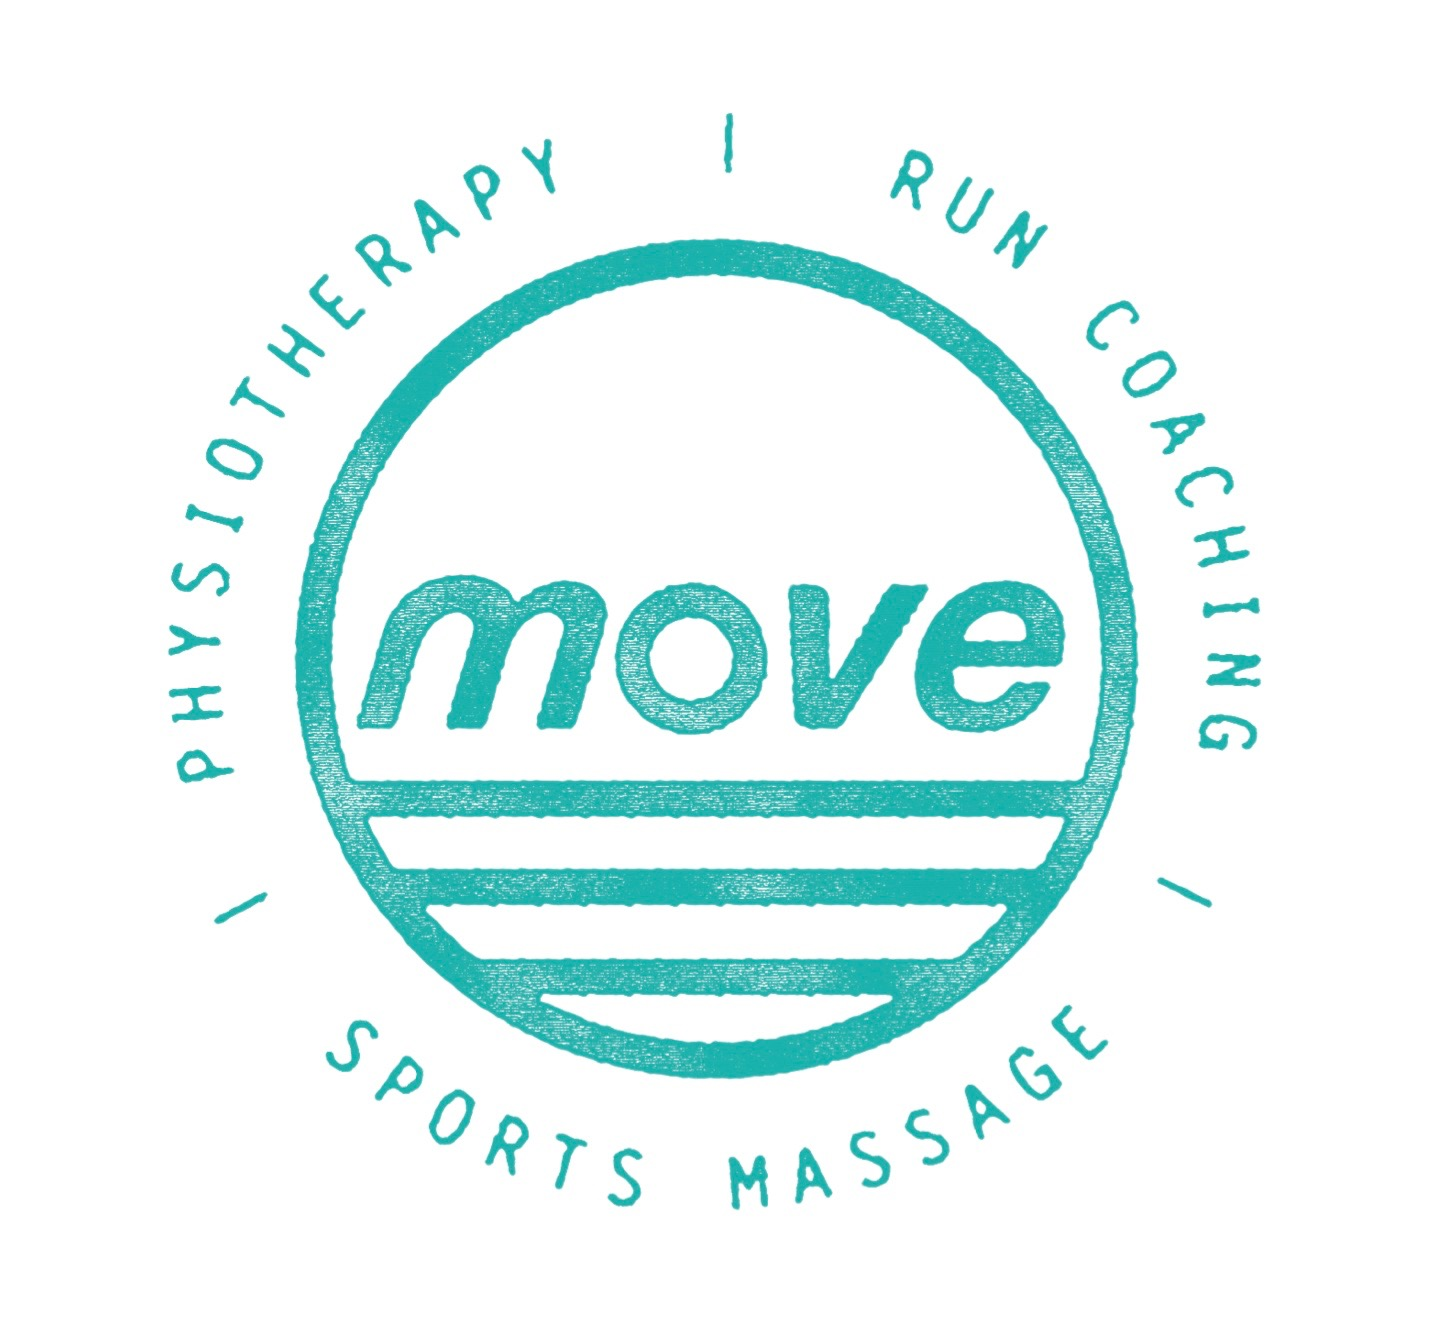 Move Cornwall Physio and Sports Massage company logo